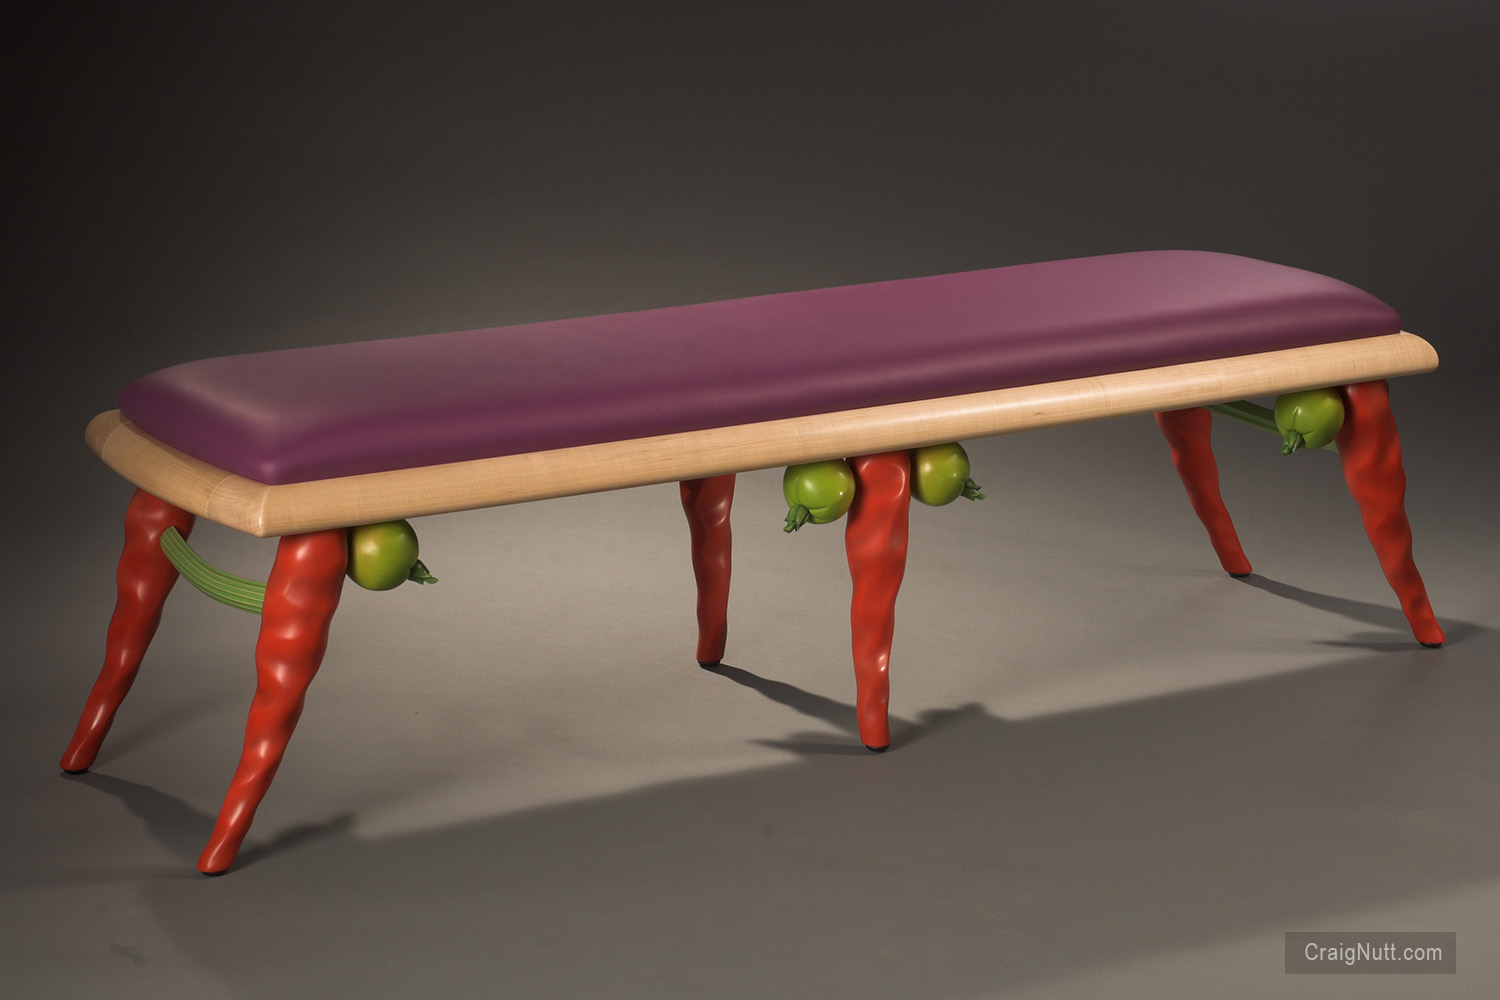 Red Chile Bench With Tomatoes and Celery Sticks